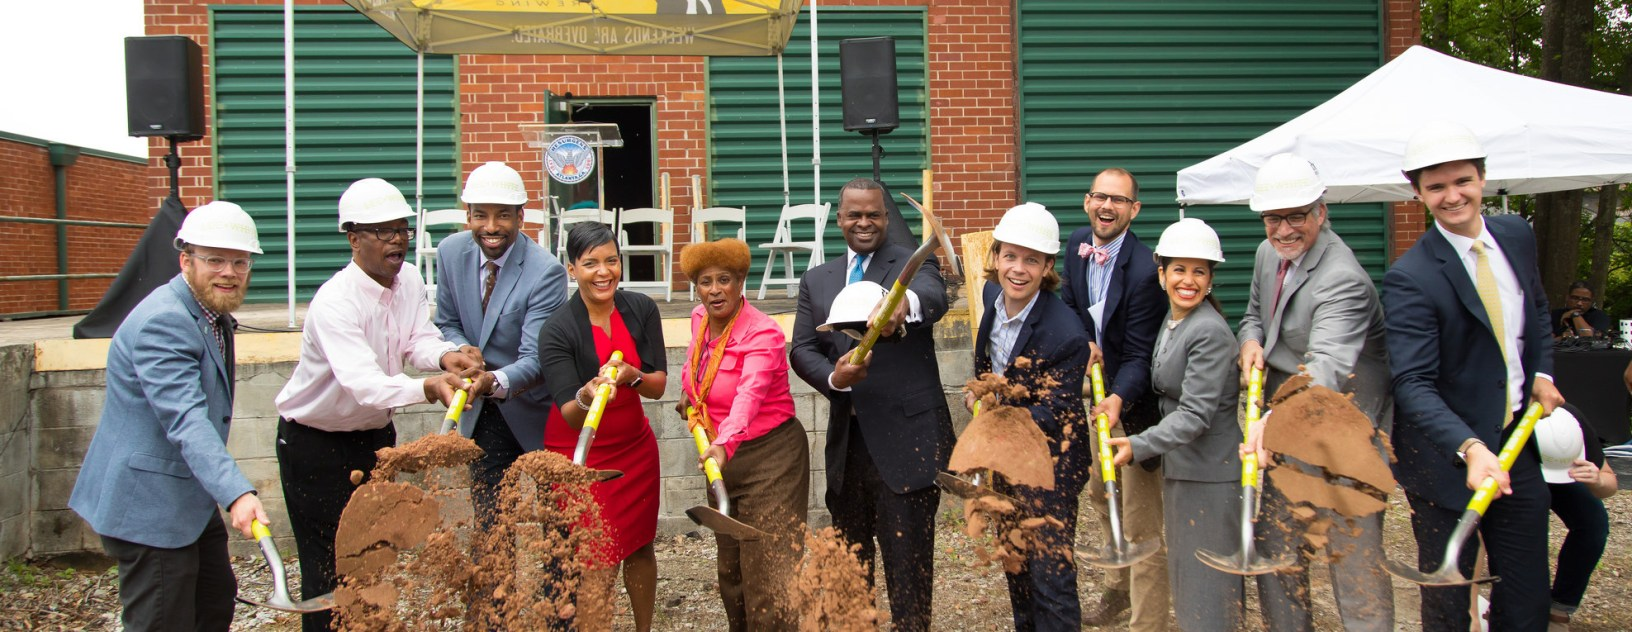 Groundbreaking with Mayor Reed at The Garage